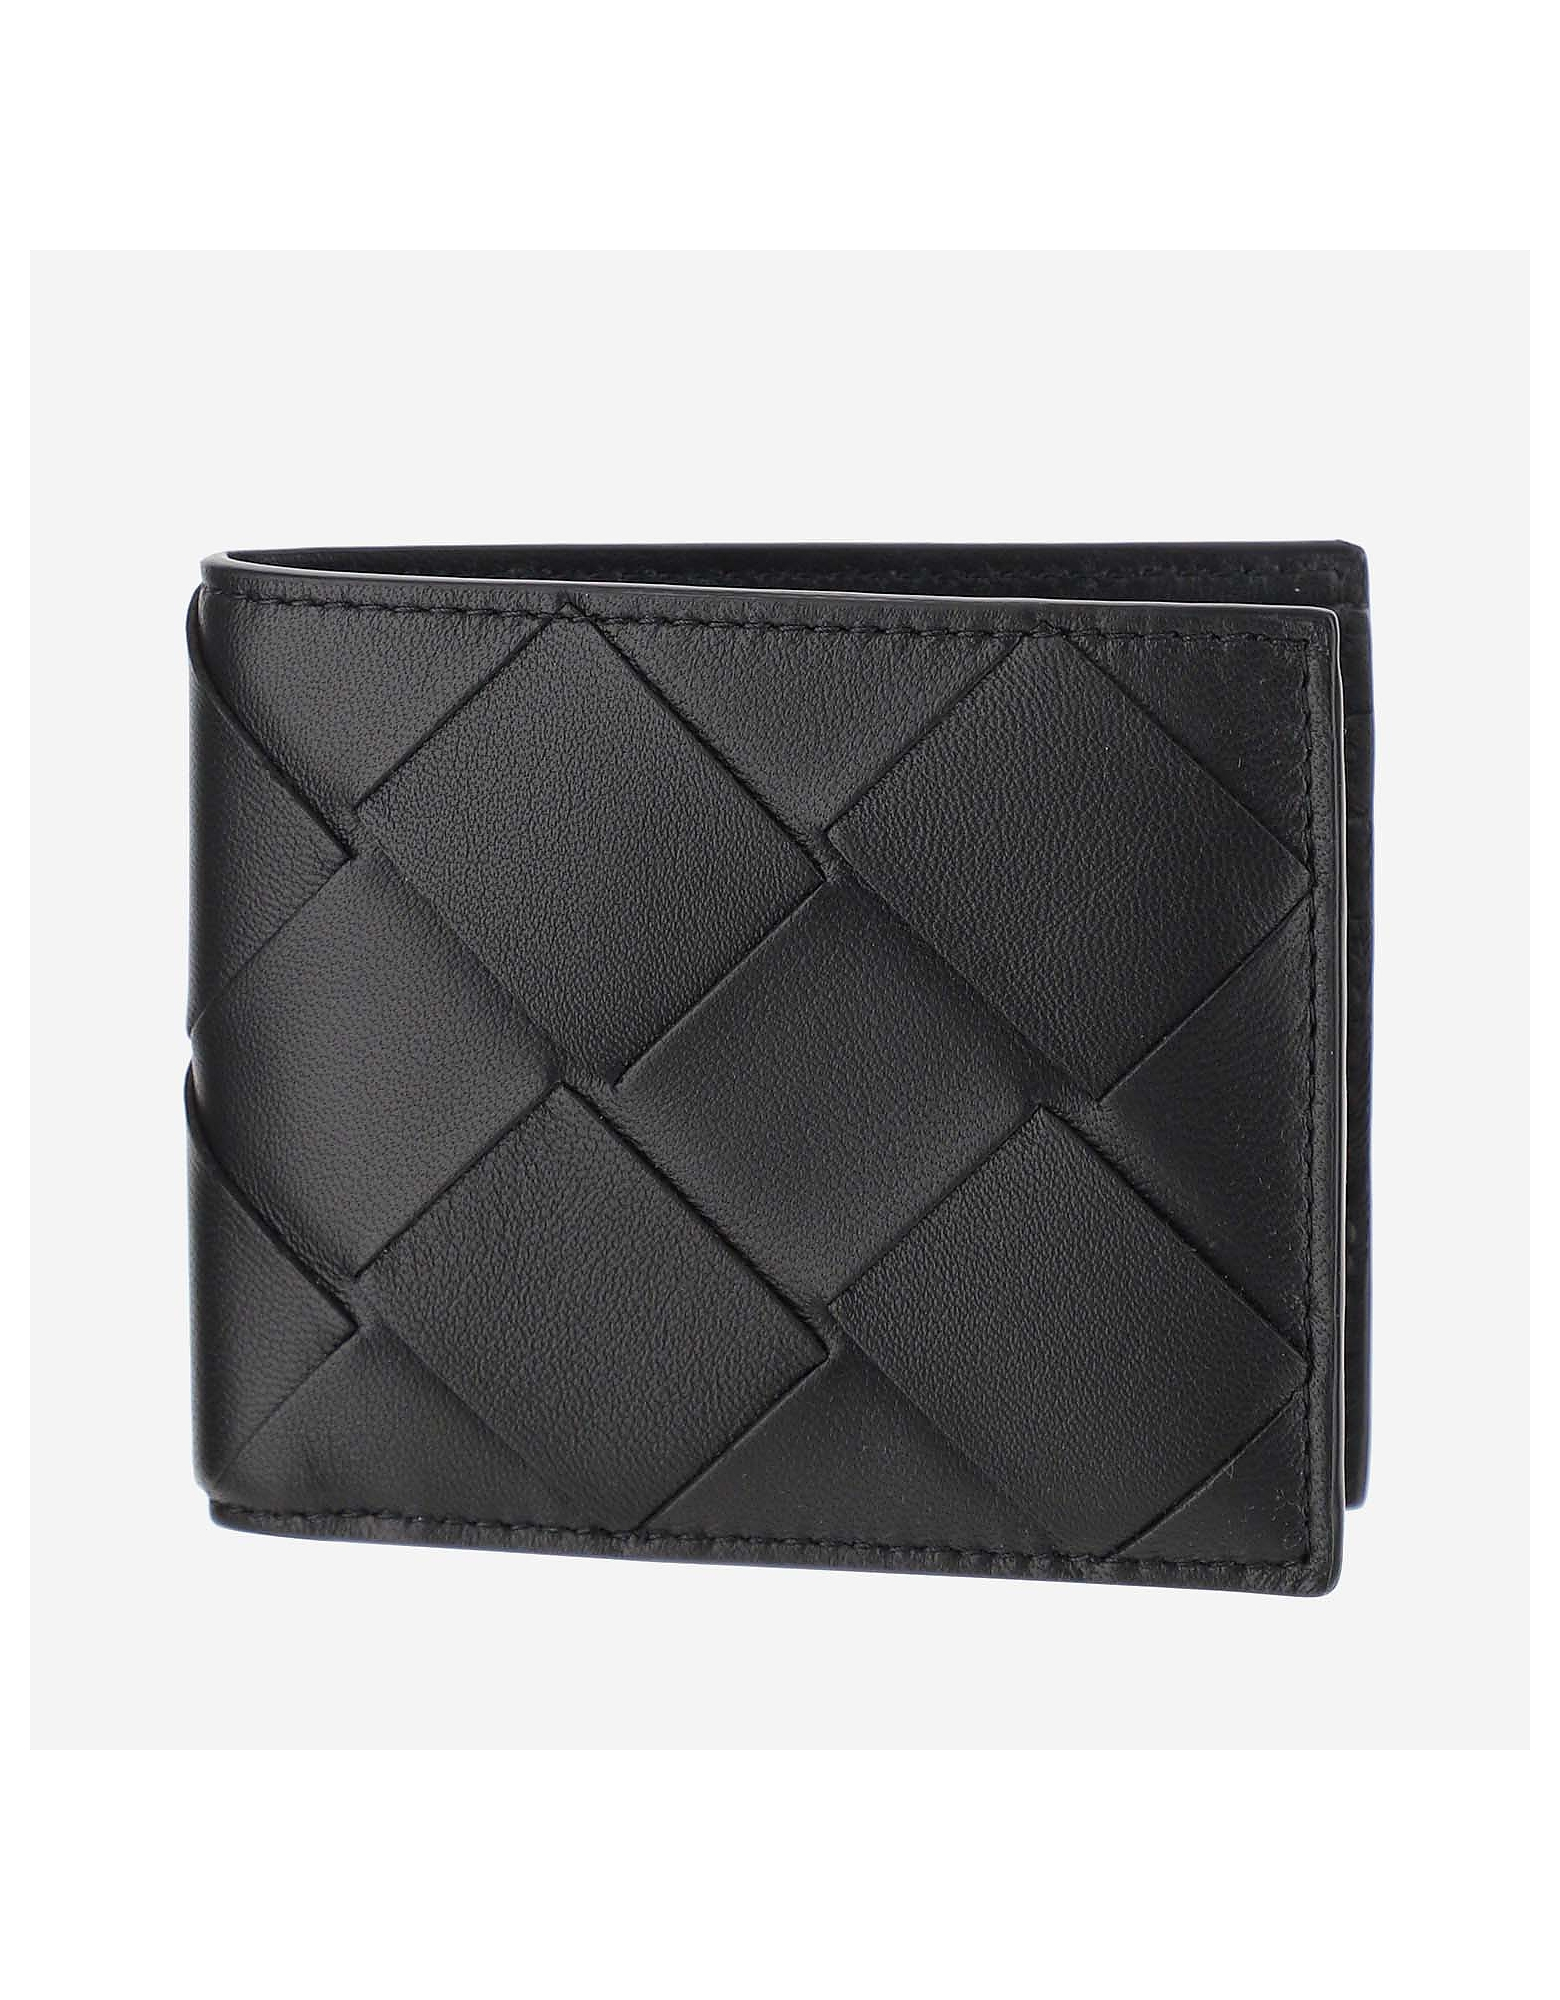 Bottega Veneta Designer Men's Bags, Black And Grey wallet